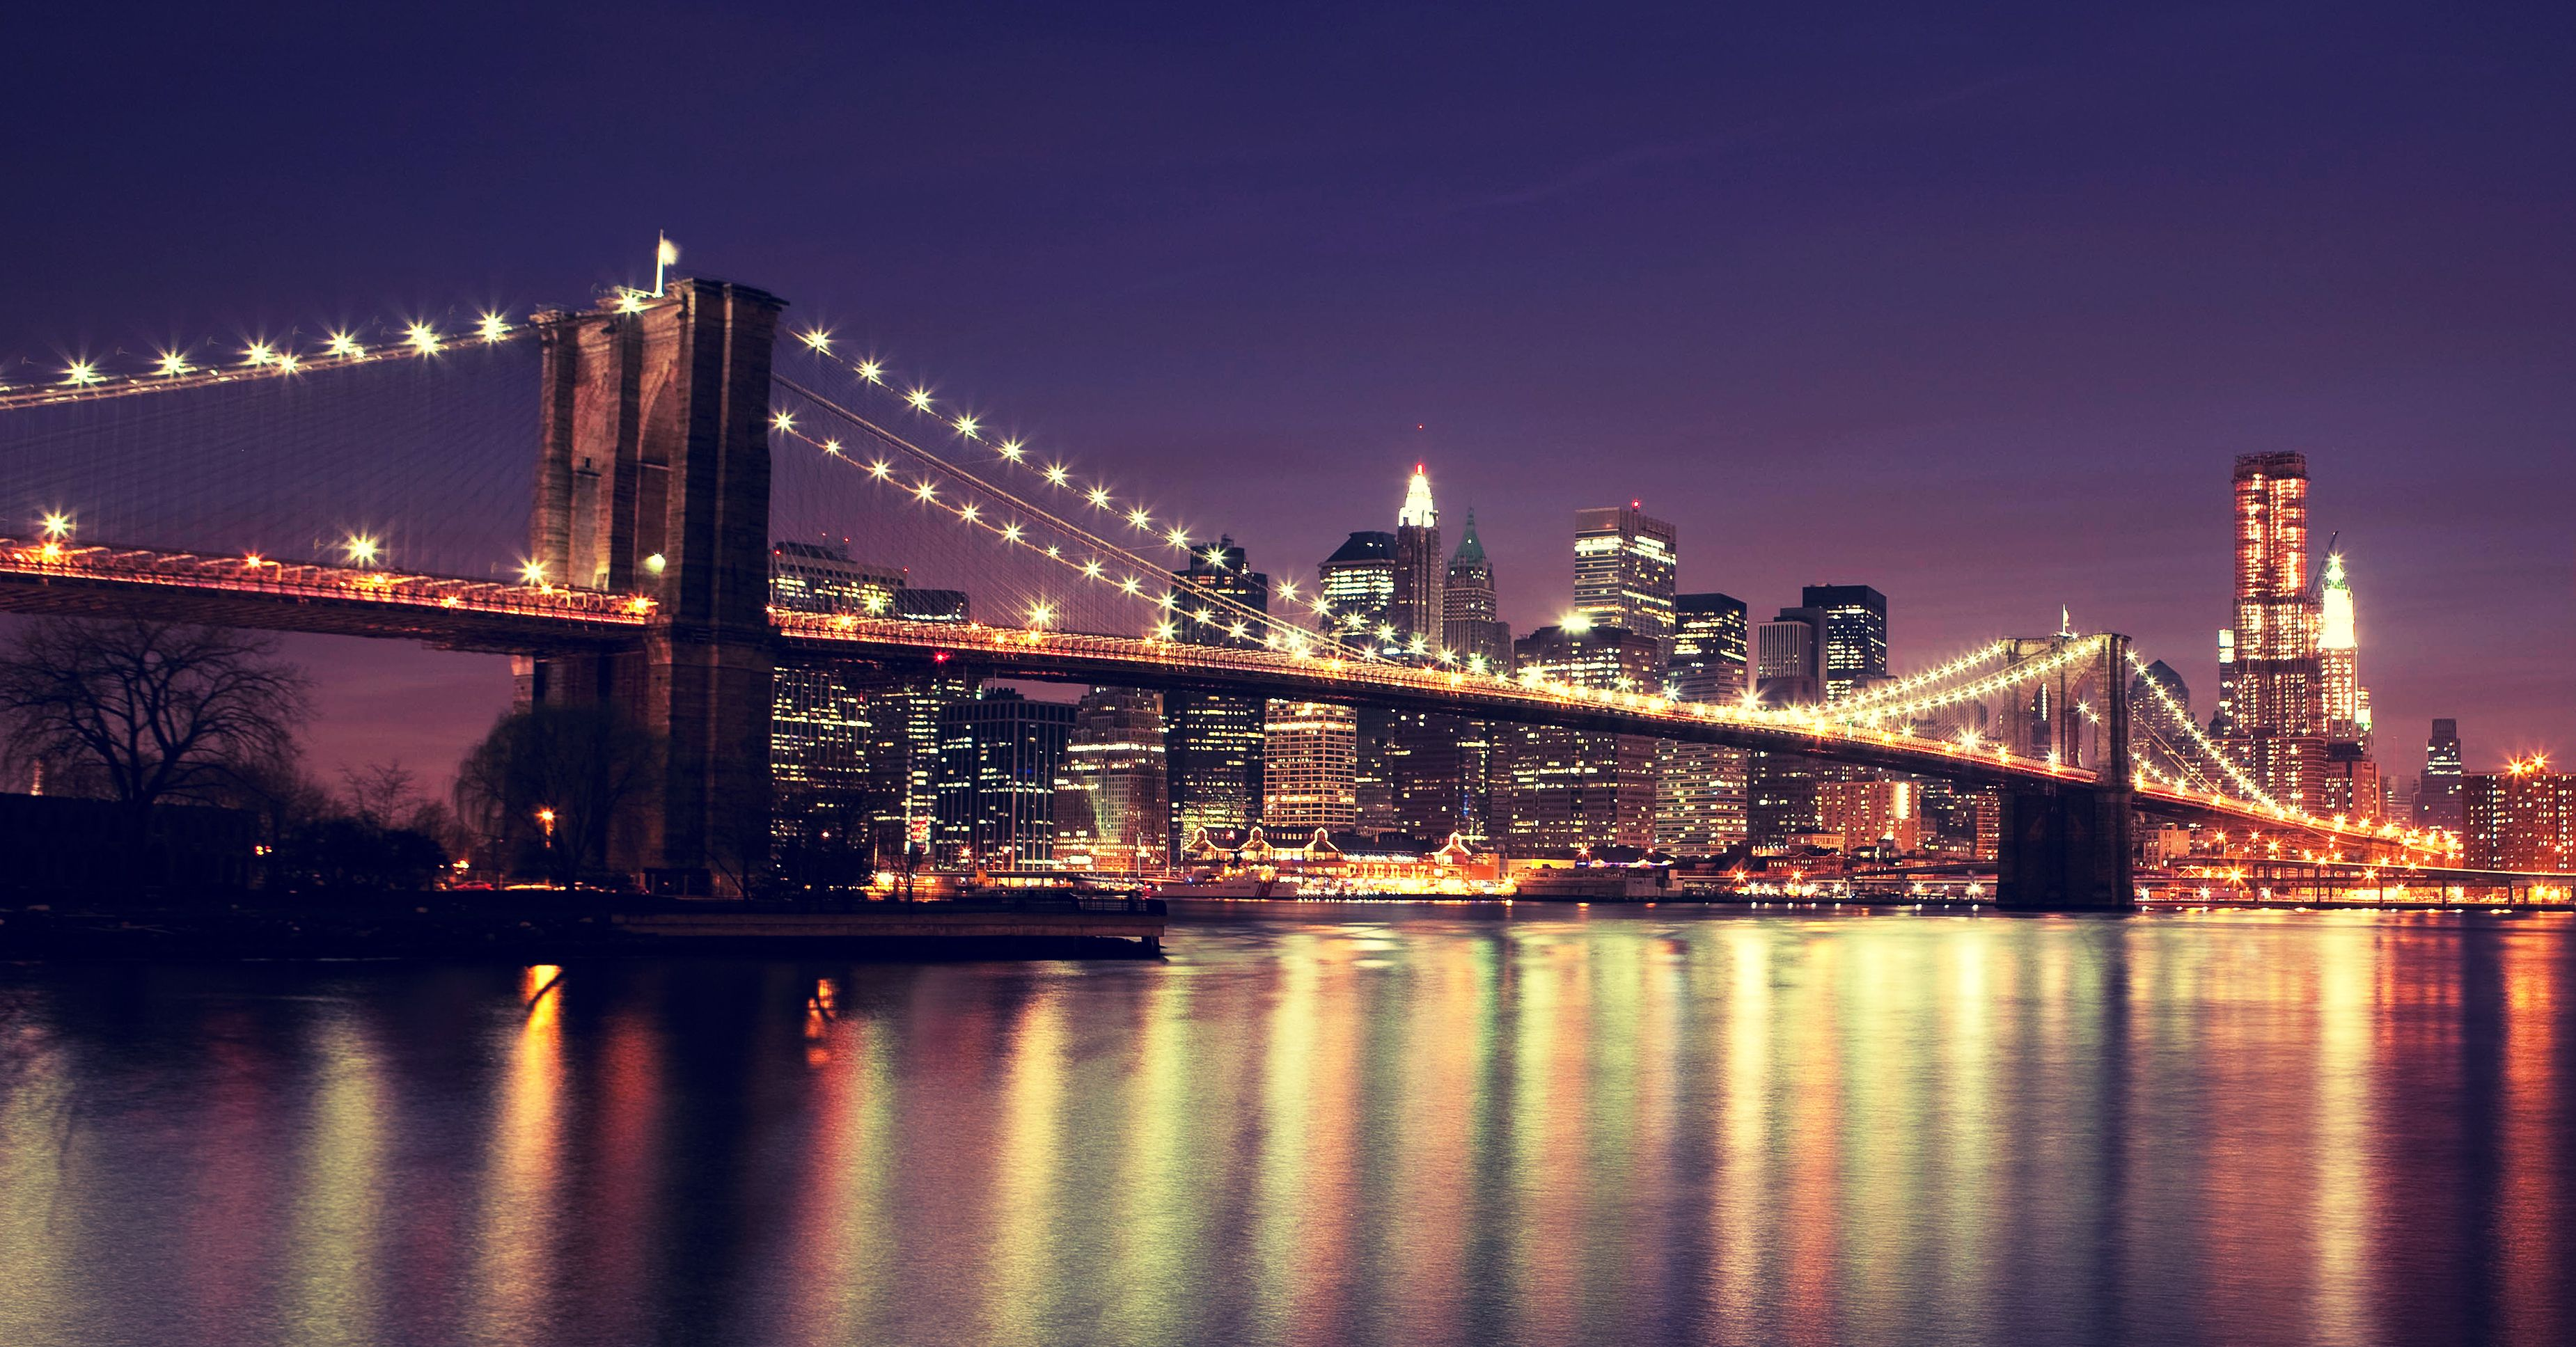 Amazing Night Time View Of The Brooklyn Bridge Brooklyn Bridge New York New York Bridge New York Pictures